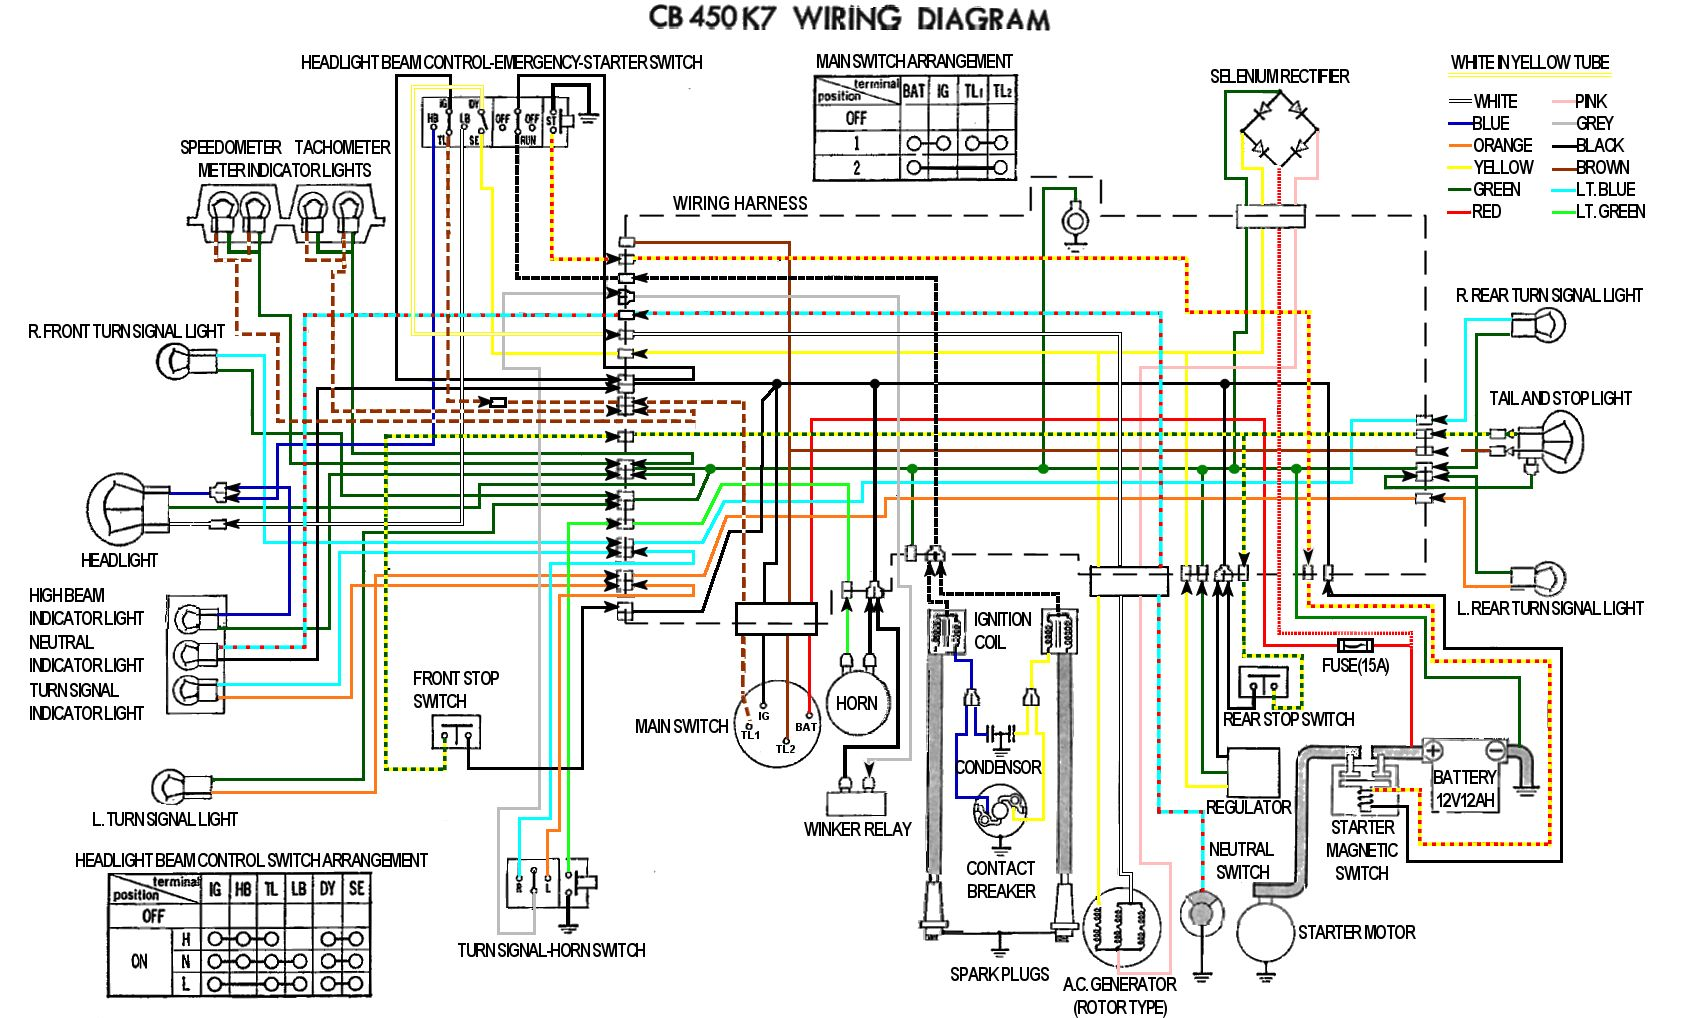 D Cb Color Wiring Diagram Now Corrected Factory Service Manual Wiring Harness Compressed on 2002 Mini Cooper Wiring Diagram